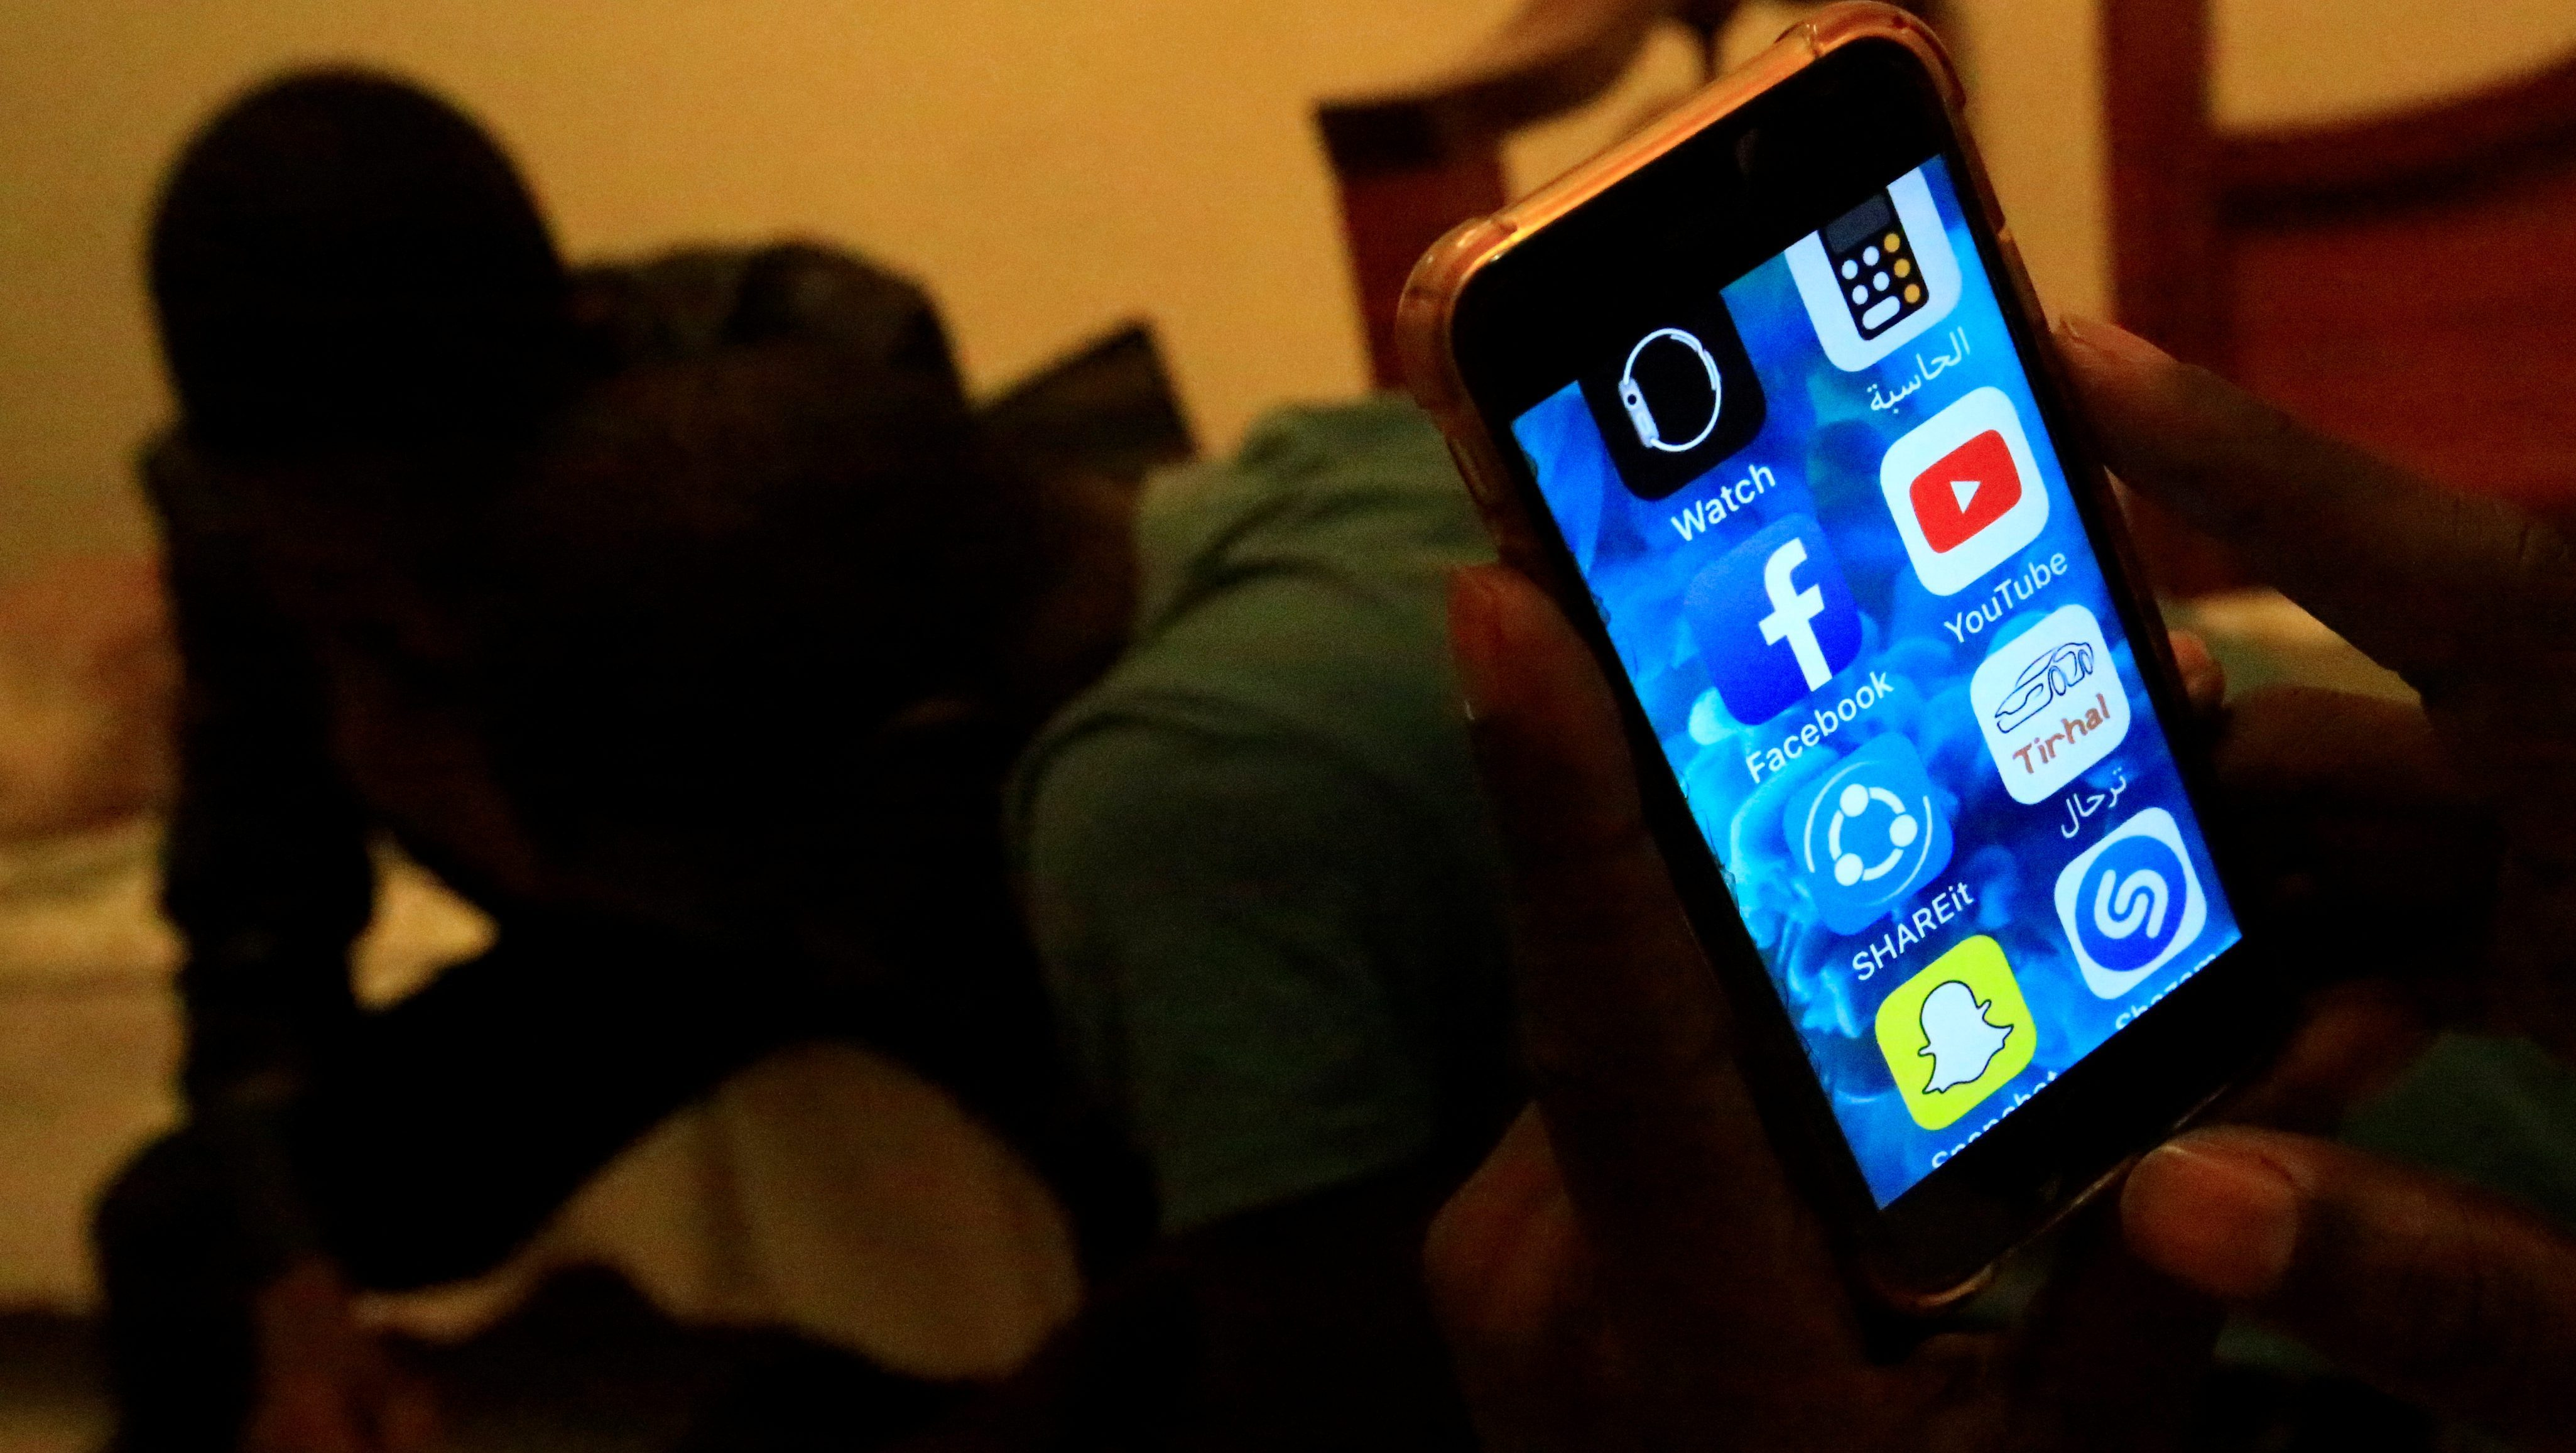 A Sudanese man holds his phone with restricted internet access social media platforms, in Khartoum